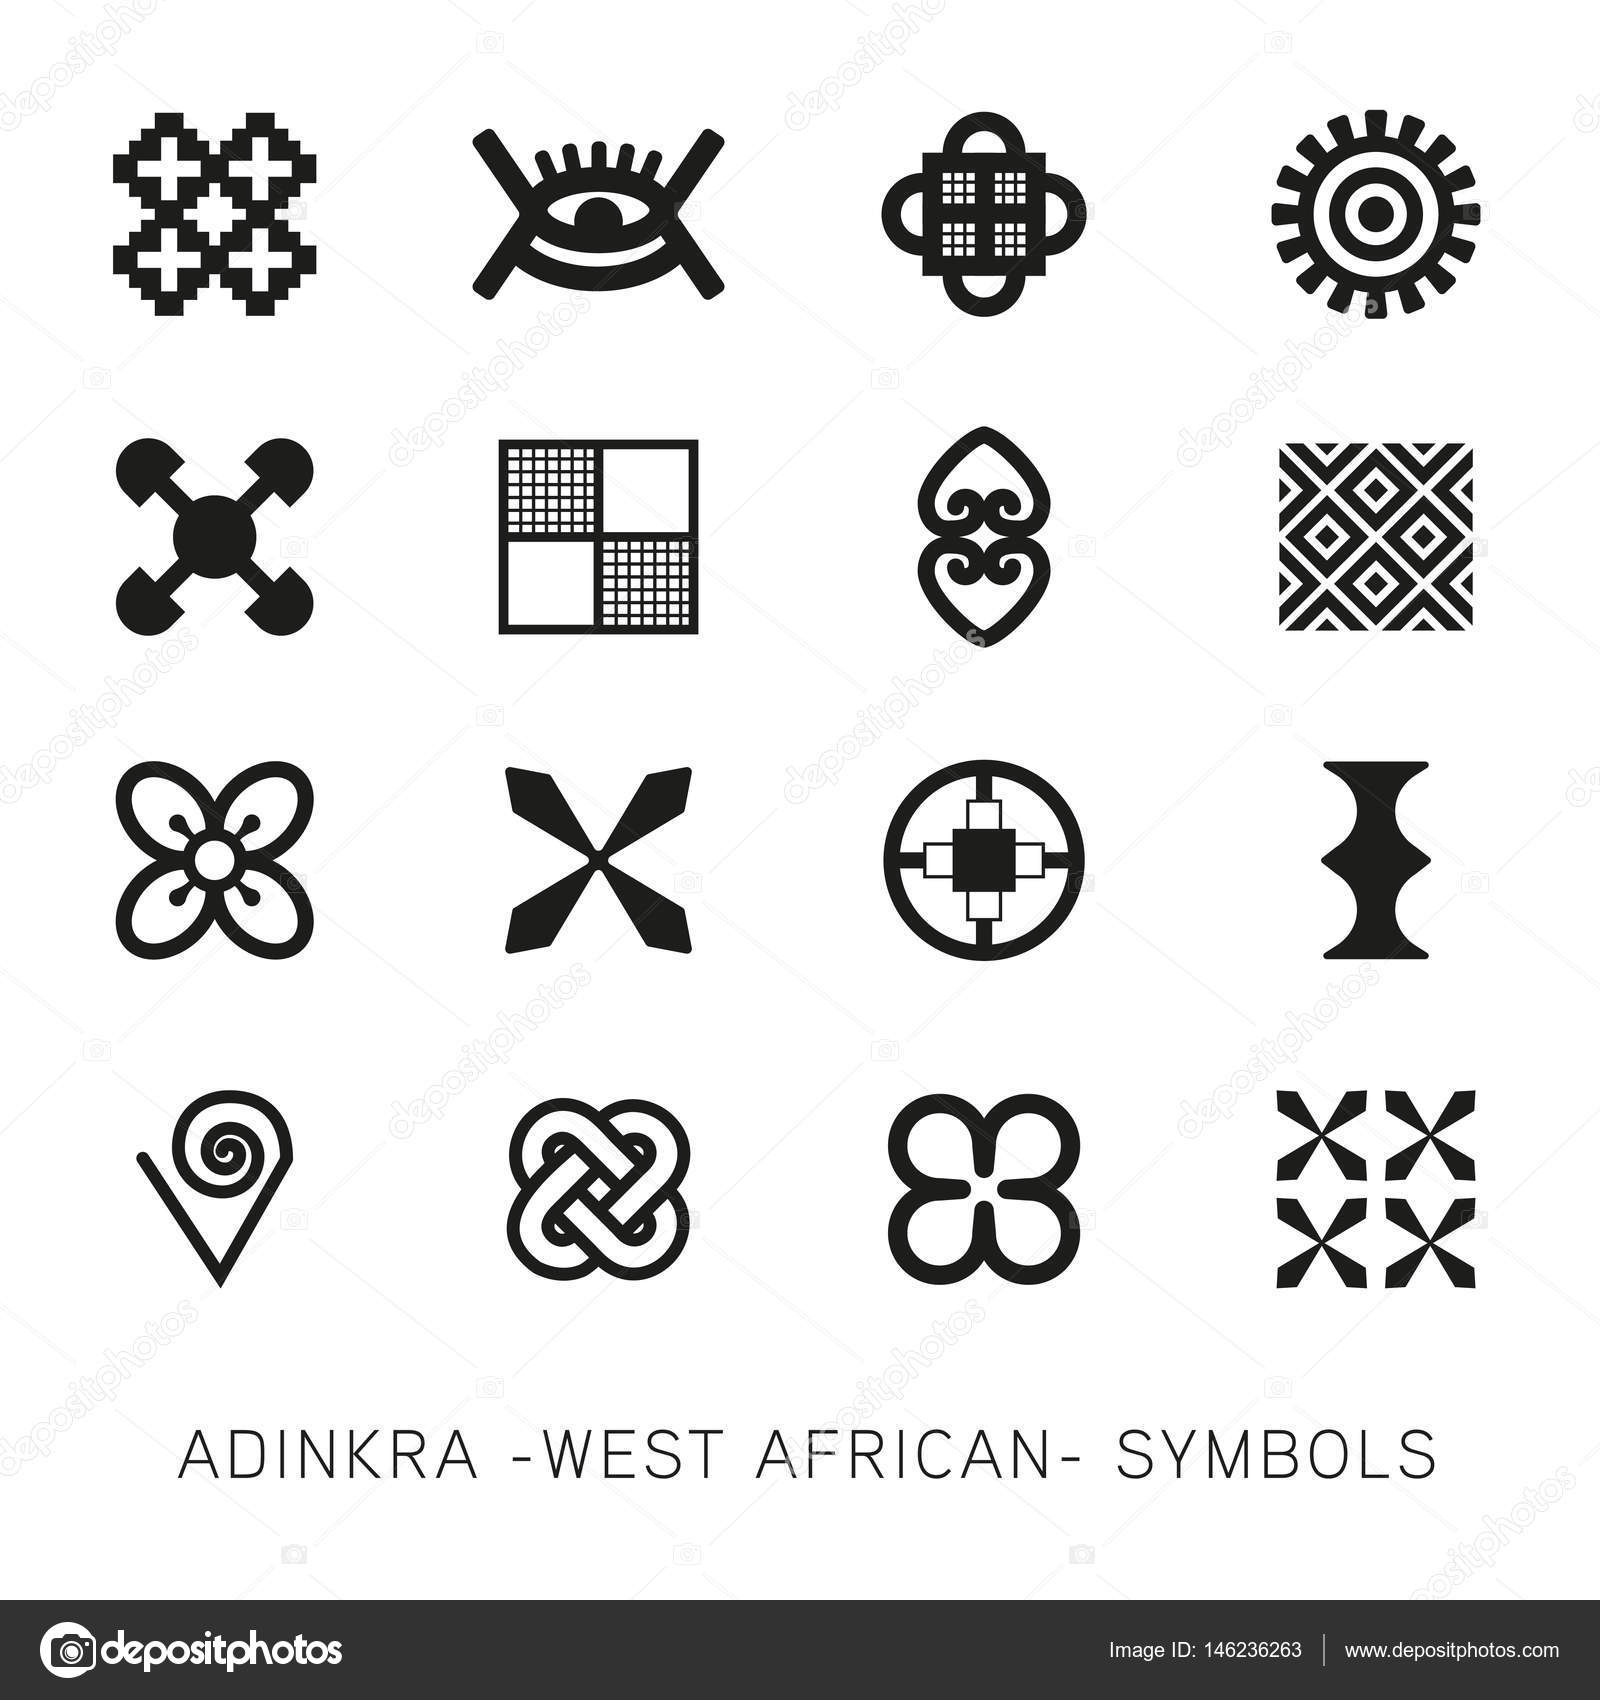 African symbols of freedom